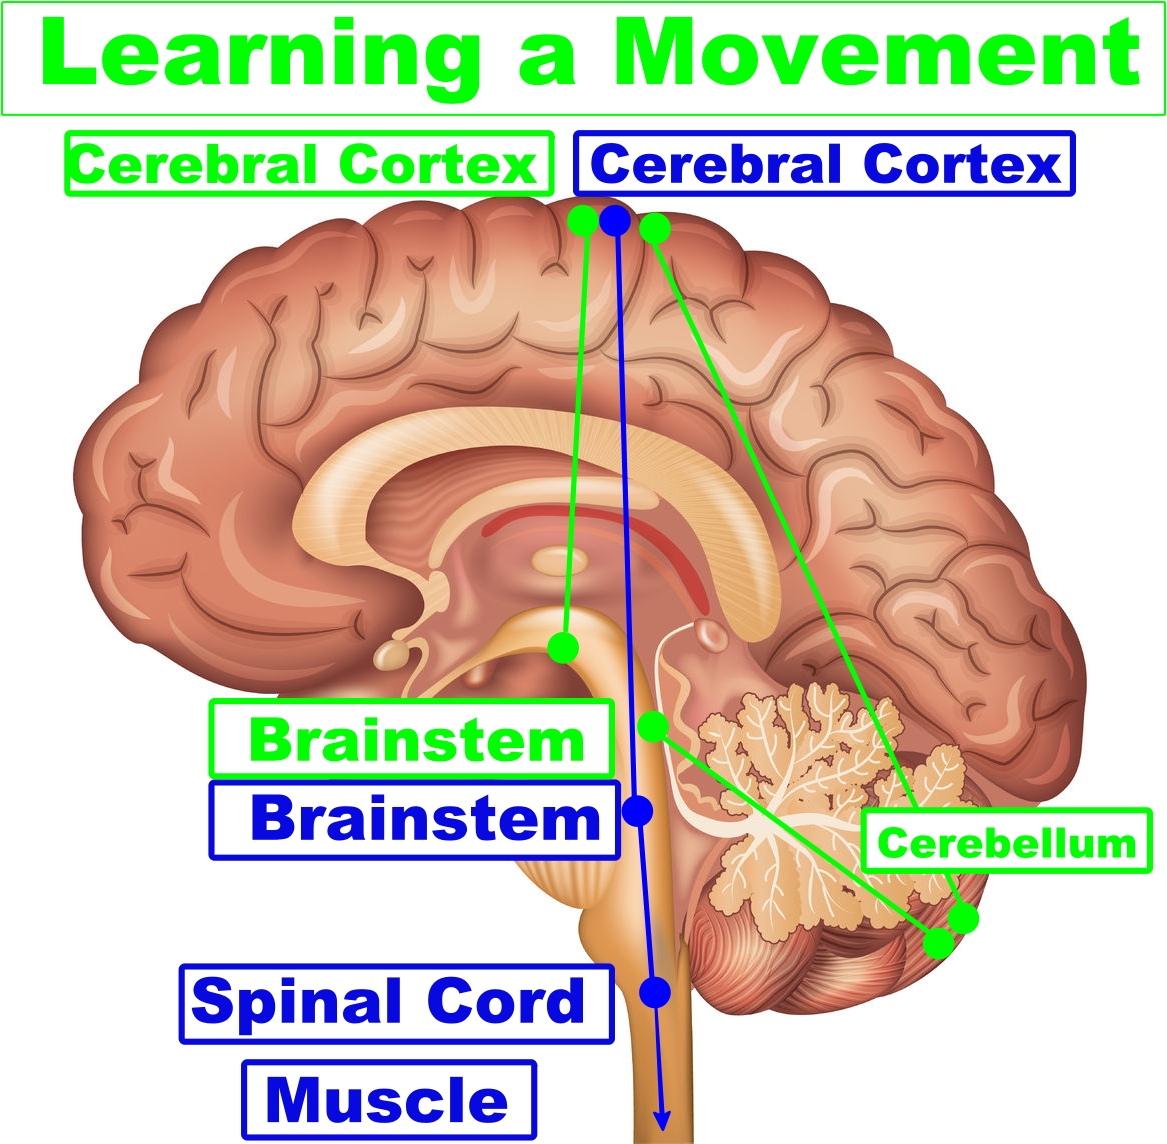 vector image of the brain regions involved in learning a movement